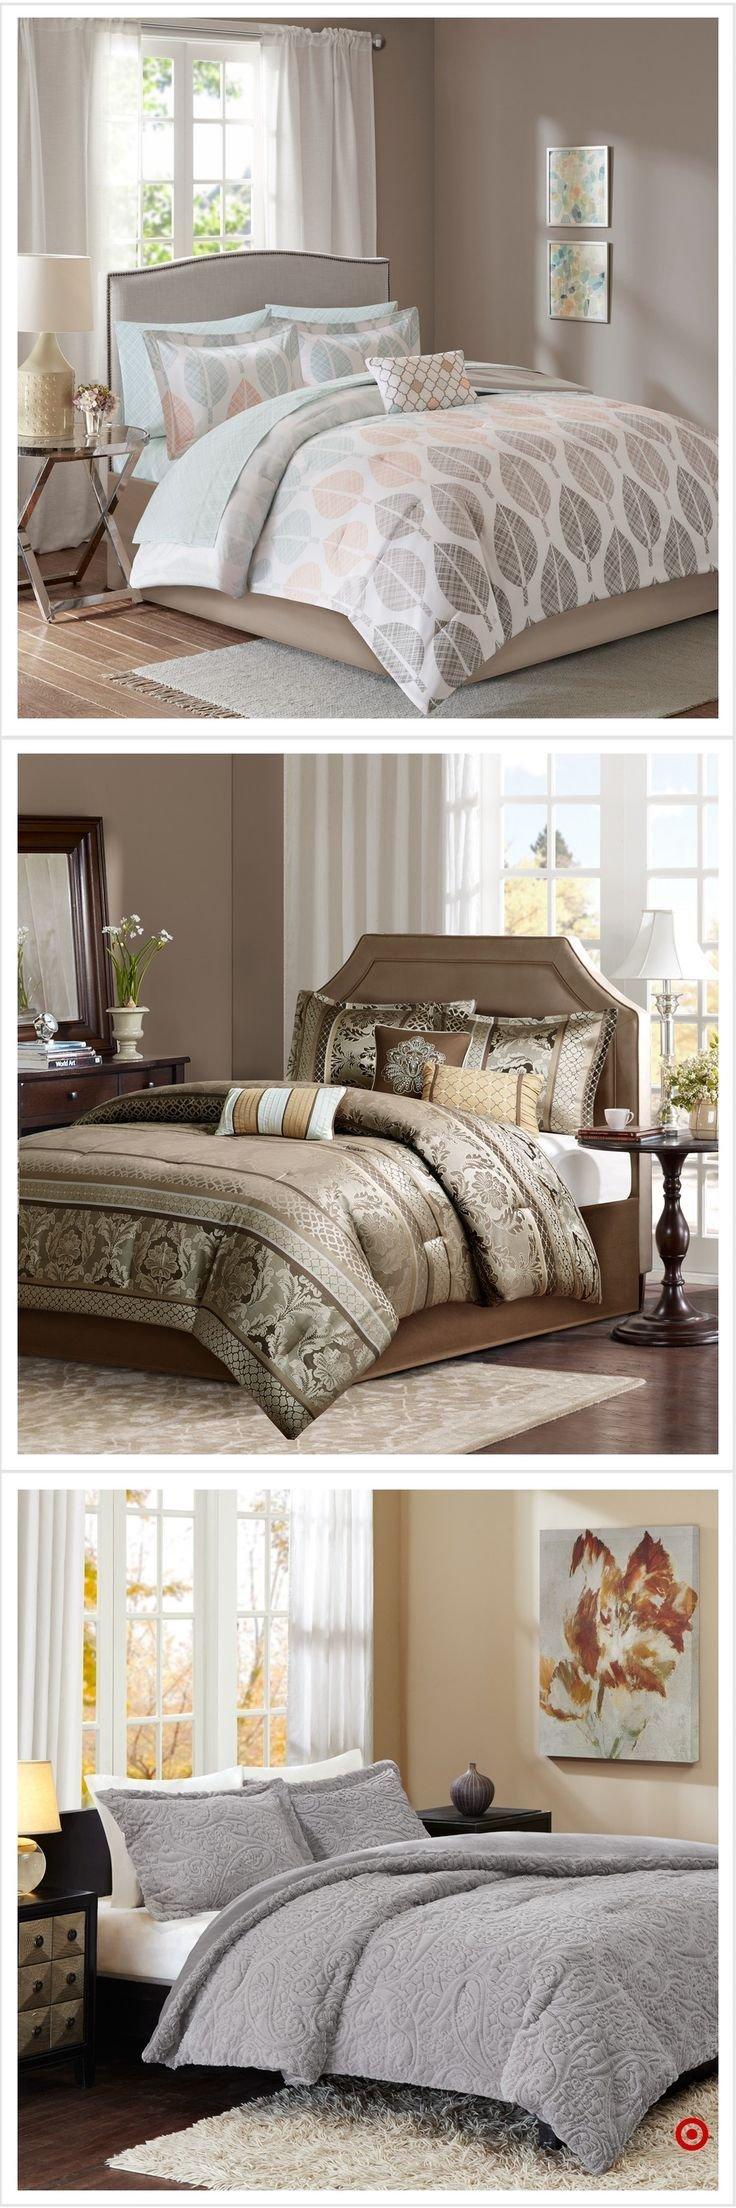 Best 25 Target Bedroom Ideas On Pinterest Small With Pictures